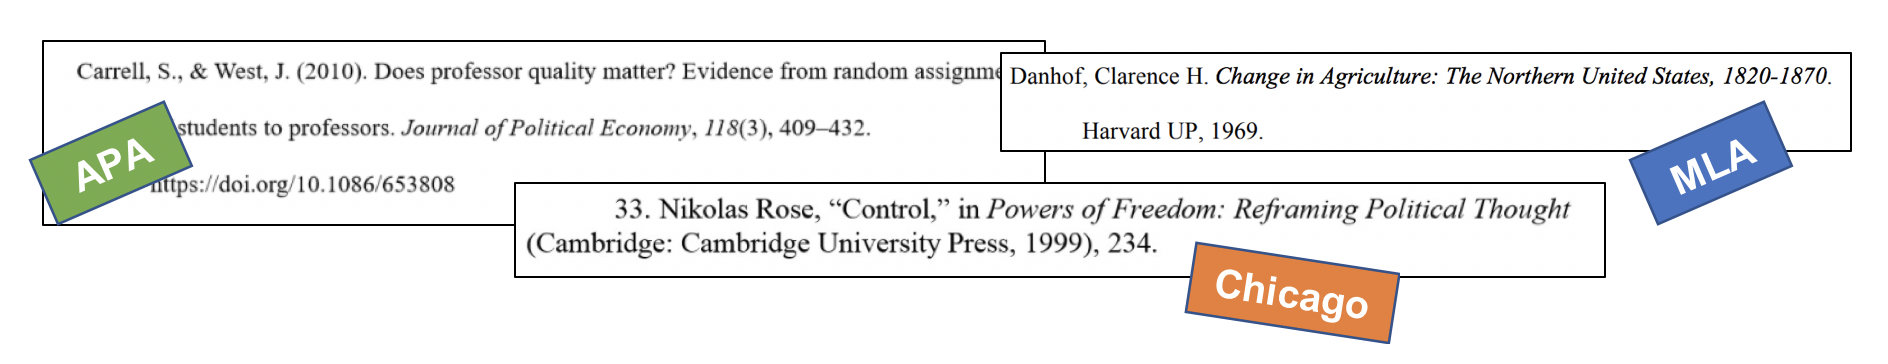 Examples of citations in APA, MLA, and Chicago style